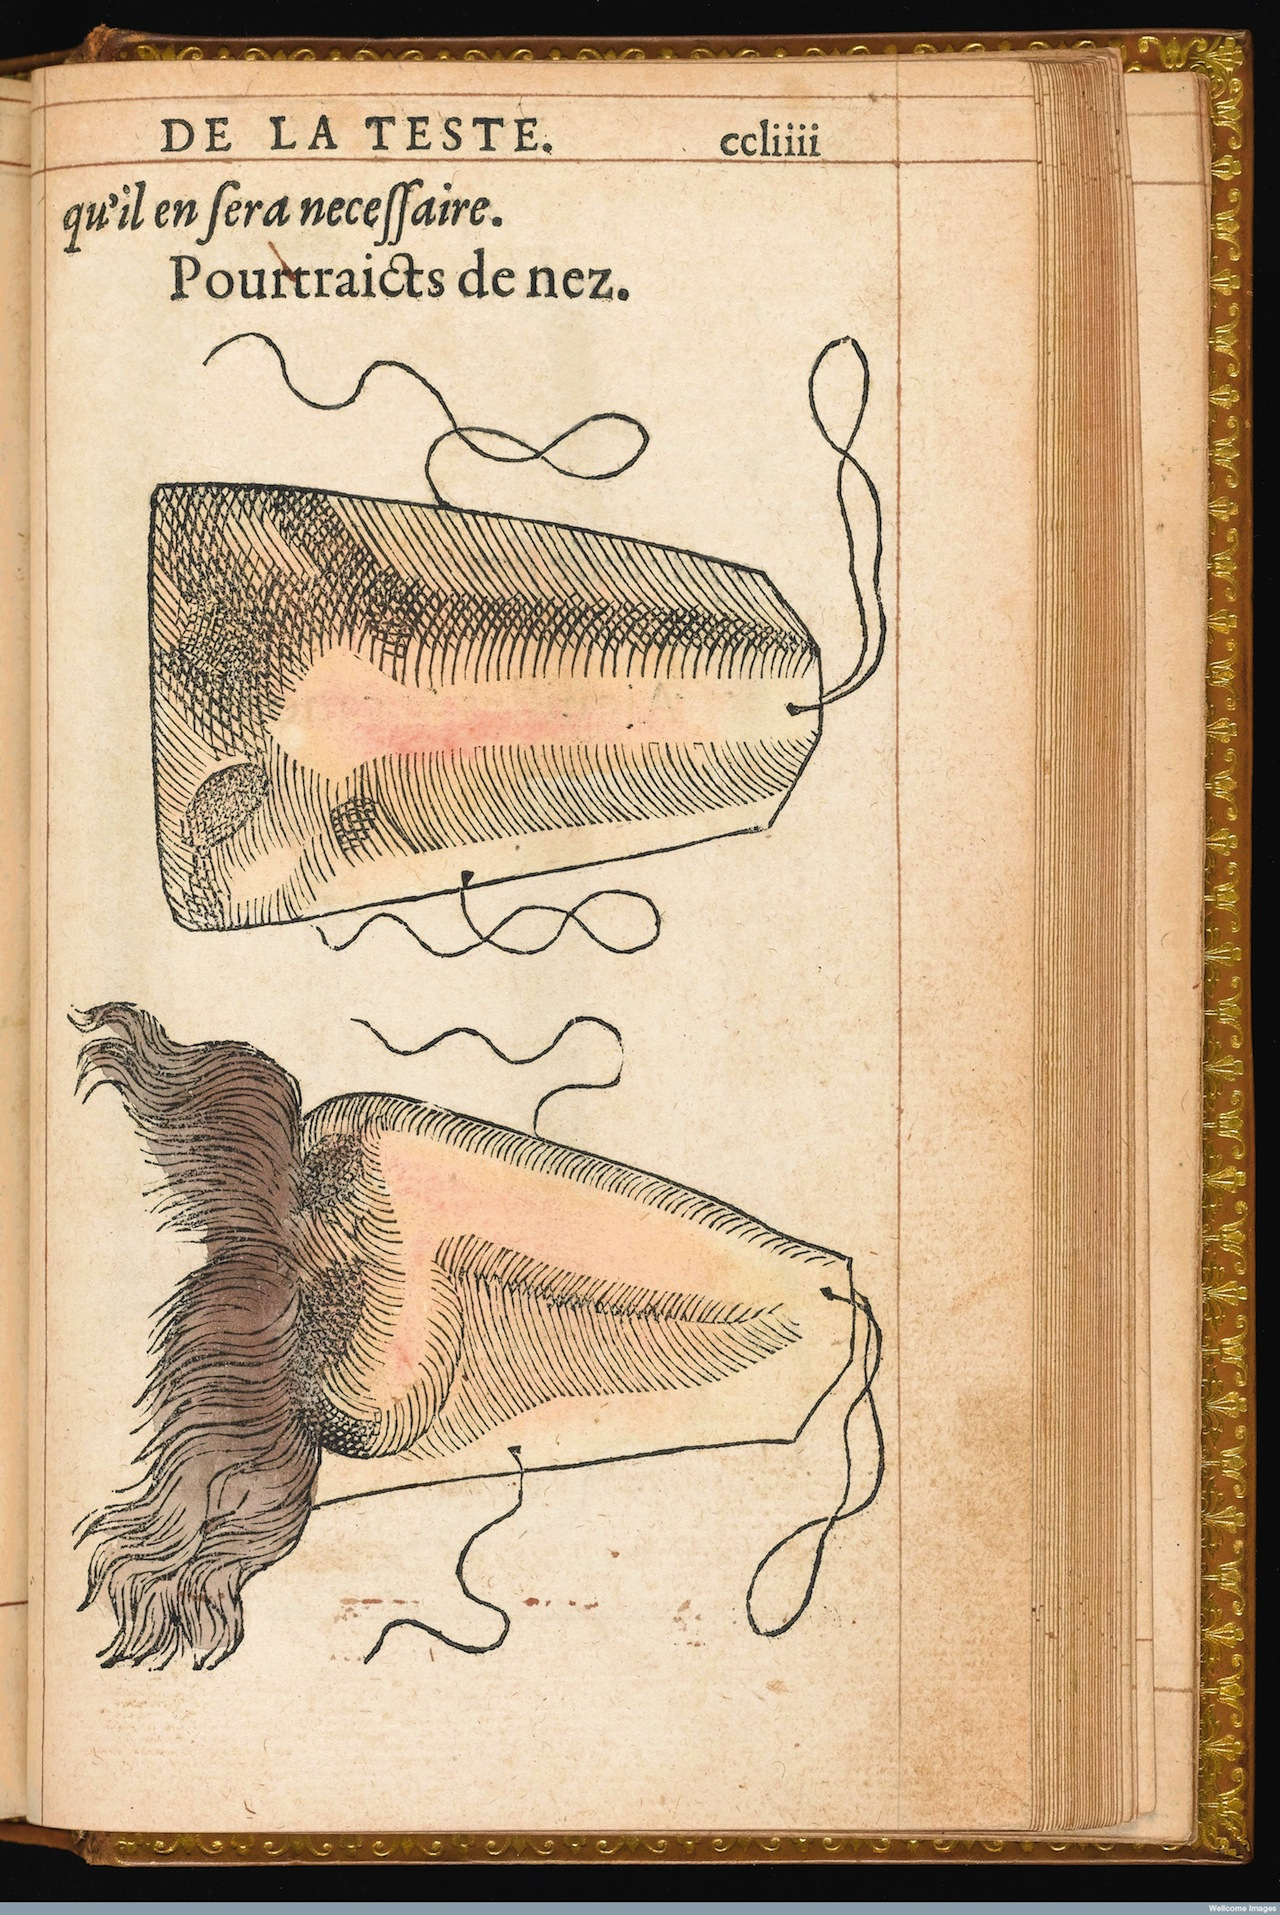 L0041126 Hand coloured illustration of a prosthetic nose. Credit: Wellcome Library, London. Wellcome Images images@wellcome.ac.uk http://wellcomeimages.org Hand coloured illustration of a prosthetic nose. 1561 By: Ambroise ParÈLa methode curative des playes, et fractures de la teste humaine. : Ambroise ParÈ Published: 1561. Copyrighted work available under Creative Commons Attribution only licence CC BY 4.0 http://creativecommons.org/licenses/by/4.0/